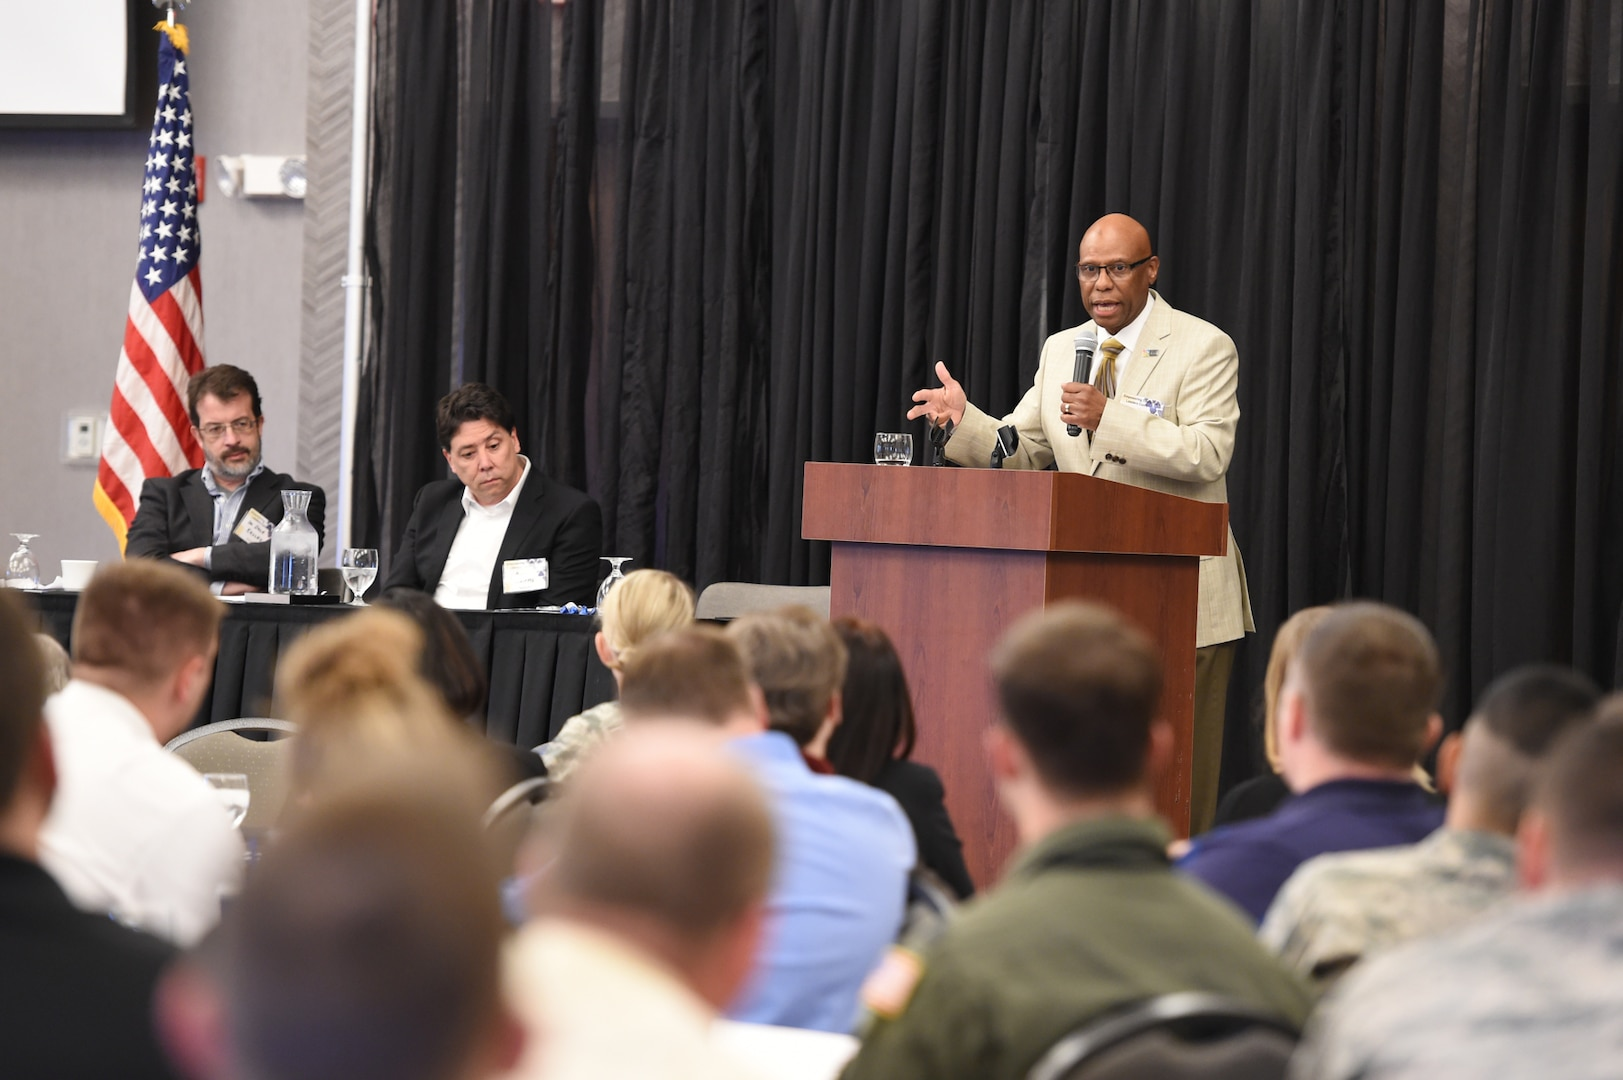 """Craig Jacobs, director of Omaha Henry Doorly Zoo and Aquarium human resources, speaks at the 2nd annual """"Empowering Tomorrow's Leaders"""" conference at the Beardmore Event Center in Bellevue, Neb., May 7, 2018. More than 300 attendees, nominated by their leadership, attended the all-day event. The theme this year was """"Igniting Innovation: How to Go Faster"""" featuring speakers and panelists to inspire out-of-the box thinking. (U.S. Navy photo by Mass Communication Specialist 1st Class Julie R. Matyascik)"""